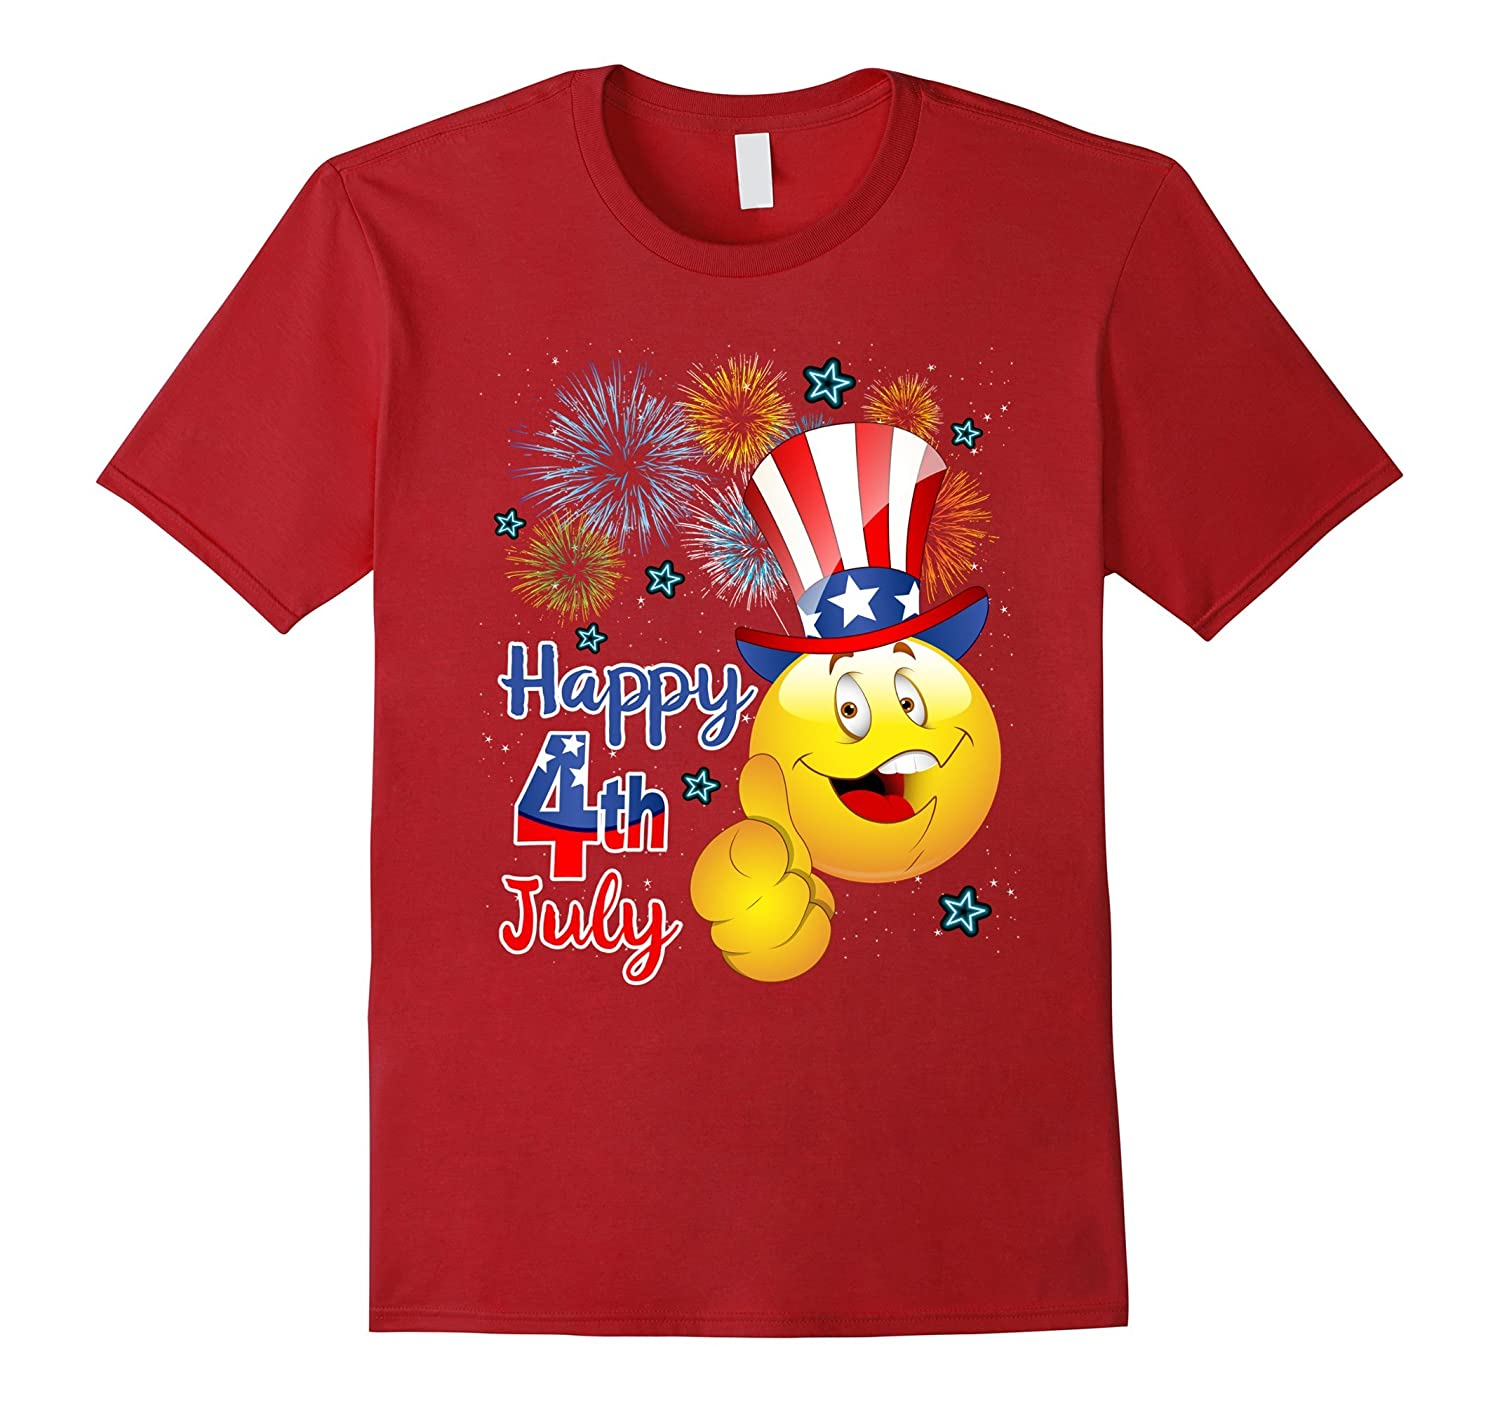 38dd4d9d21b4 Amazon.com: Funny Independence Day Shirt Happy 4th July T Shirt: Clothing